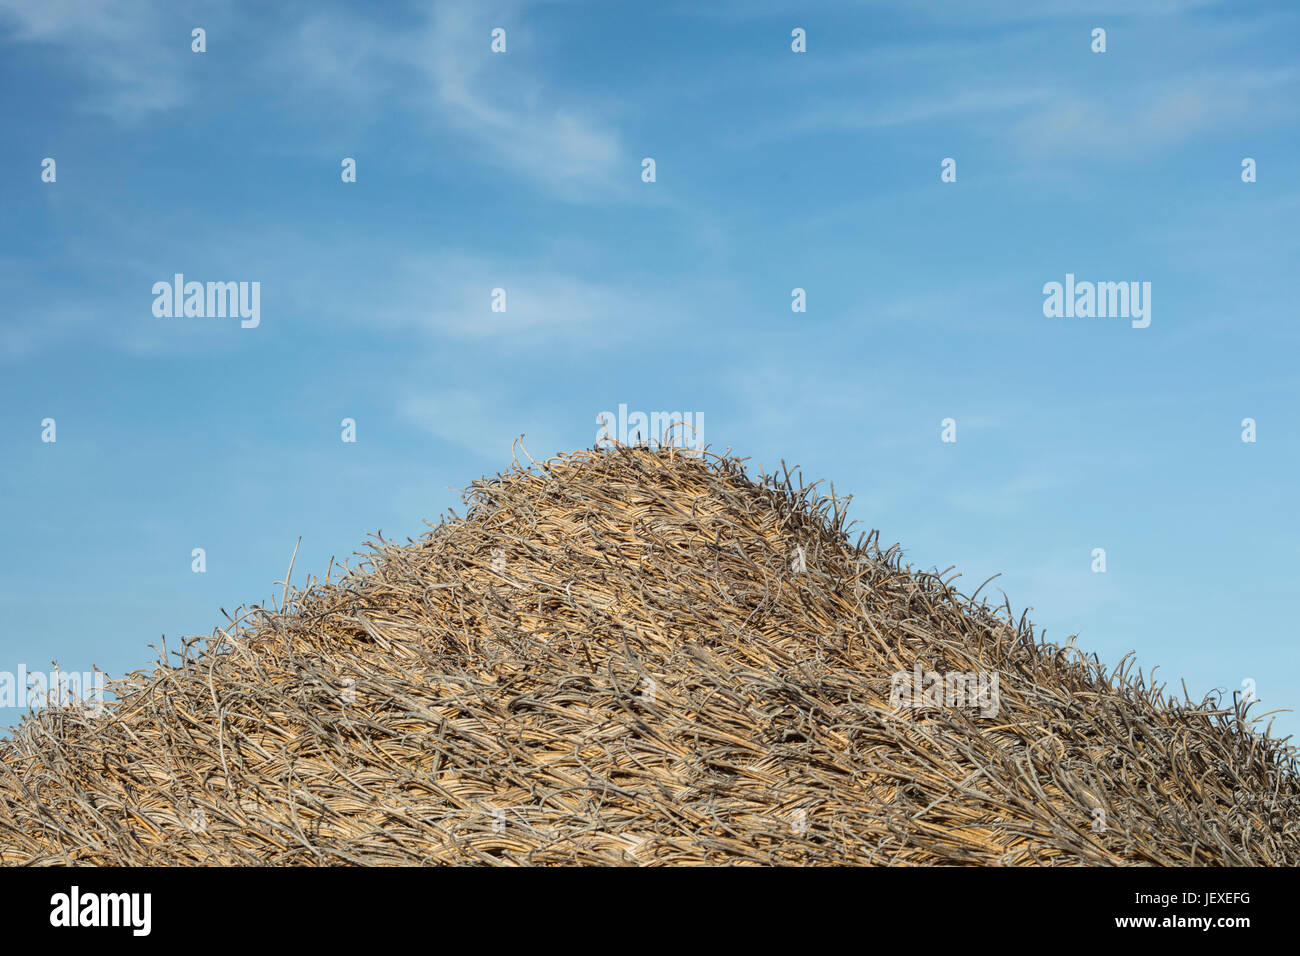 Detail of woven straw umbrella with sky in the background. - Stock Image